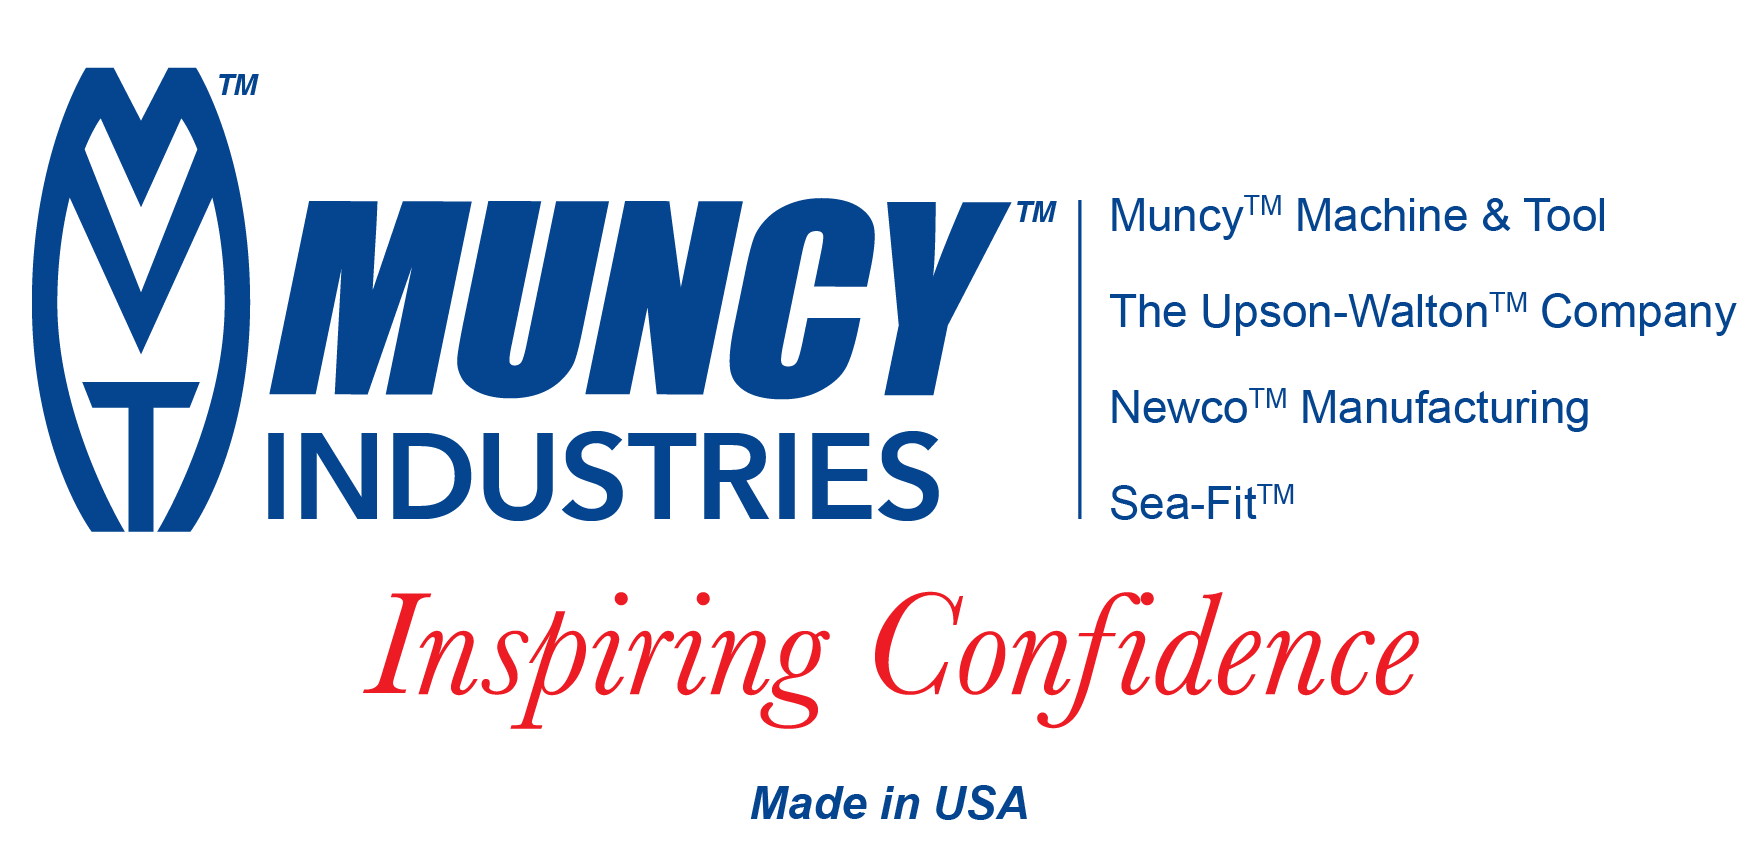 muncy dating site Muncy dating site - free dating in muncy at adatingnestcom 100% free online muncy dating site connecting local singles in muncy to find online love and romance.